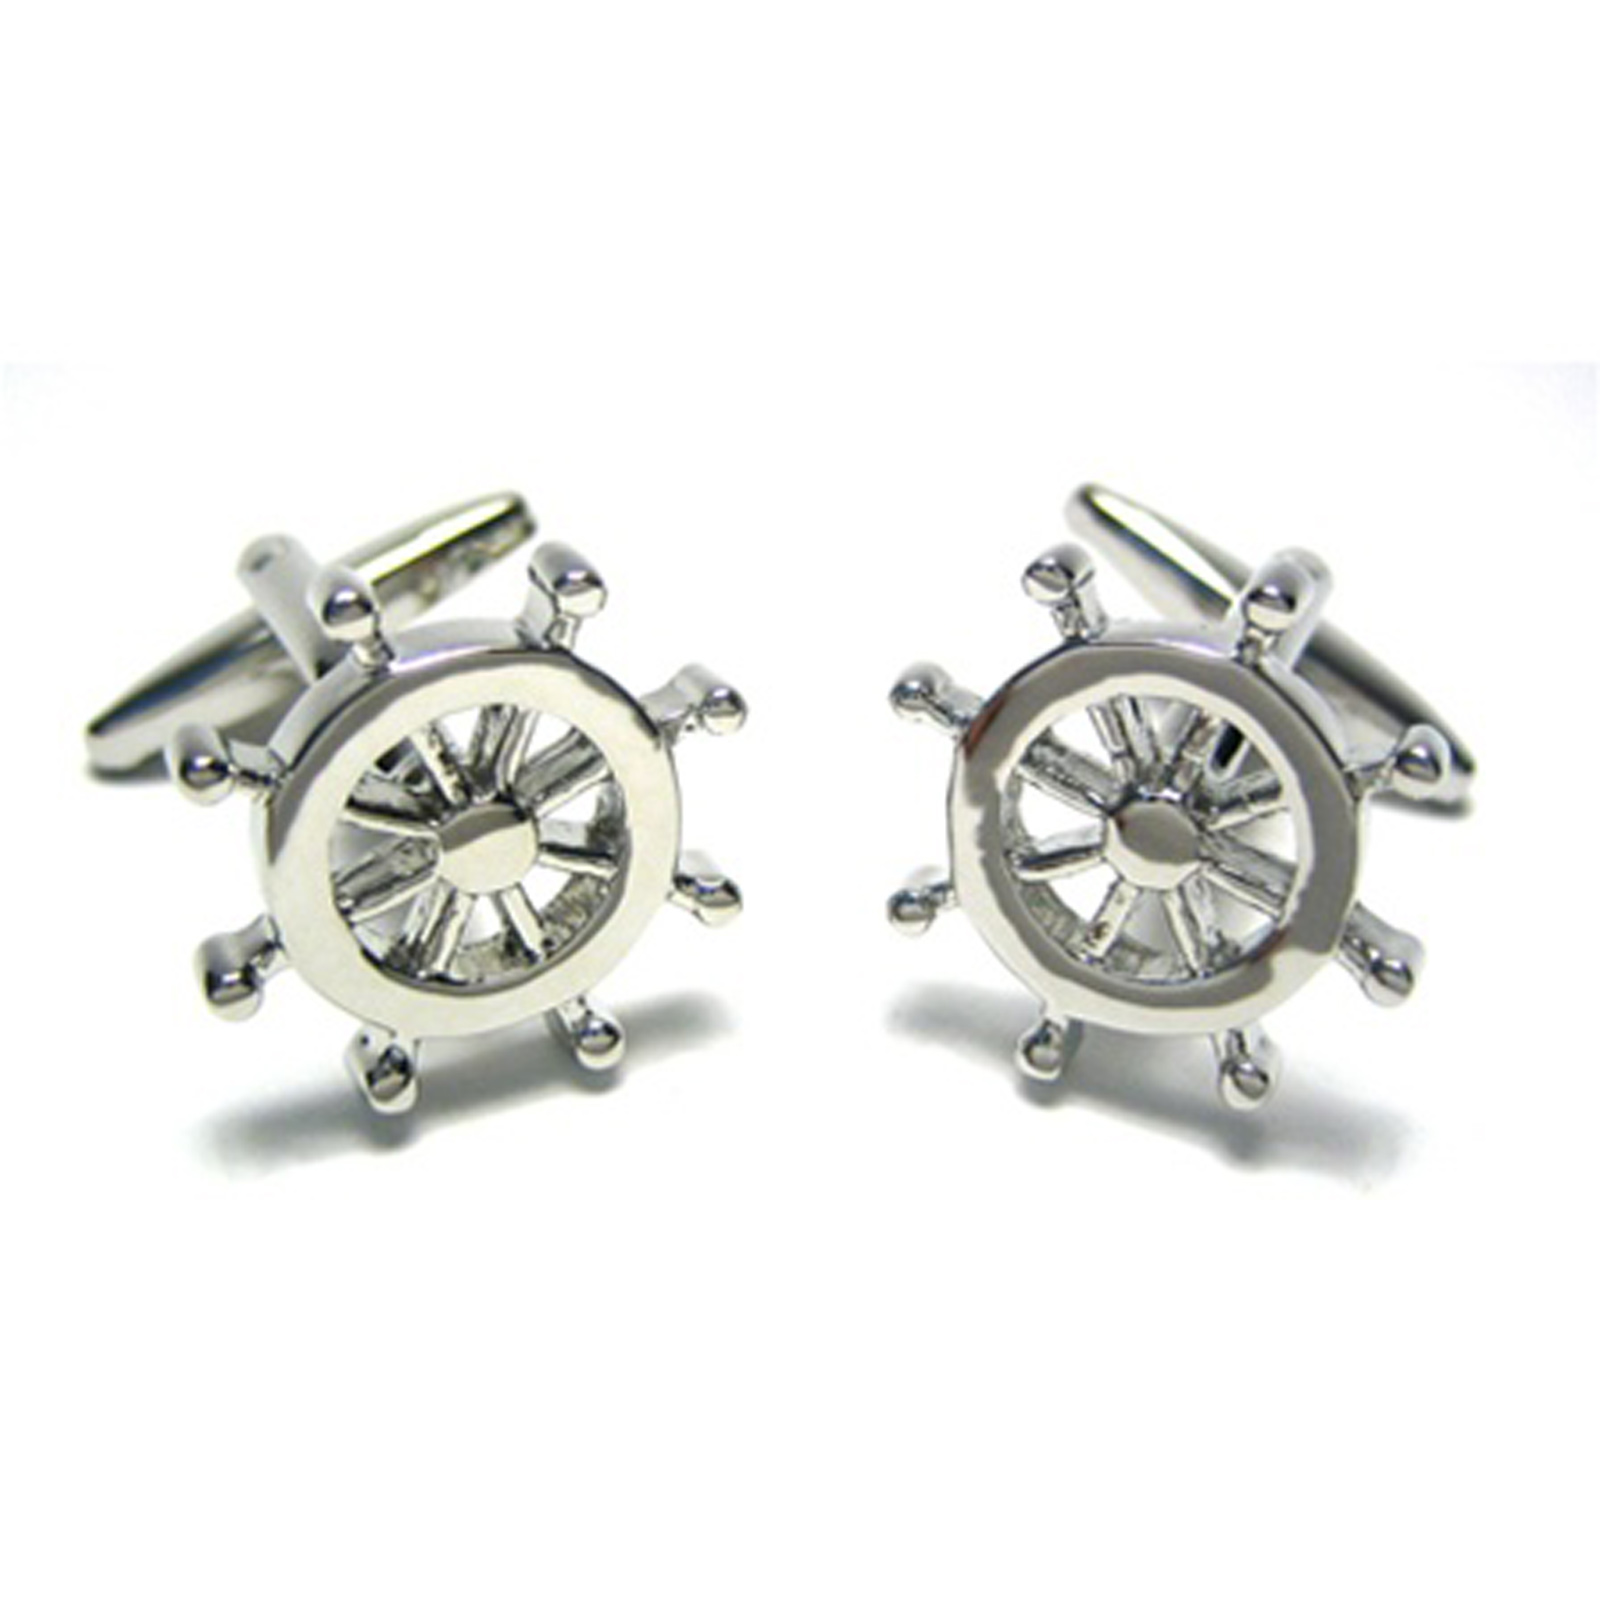 New Silver Boat Wheel Cufflink Boating Sailing Fishing US Navy w/ Gift Box